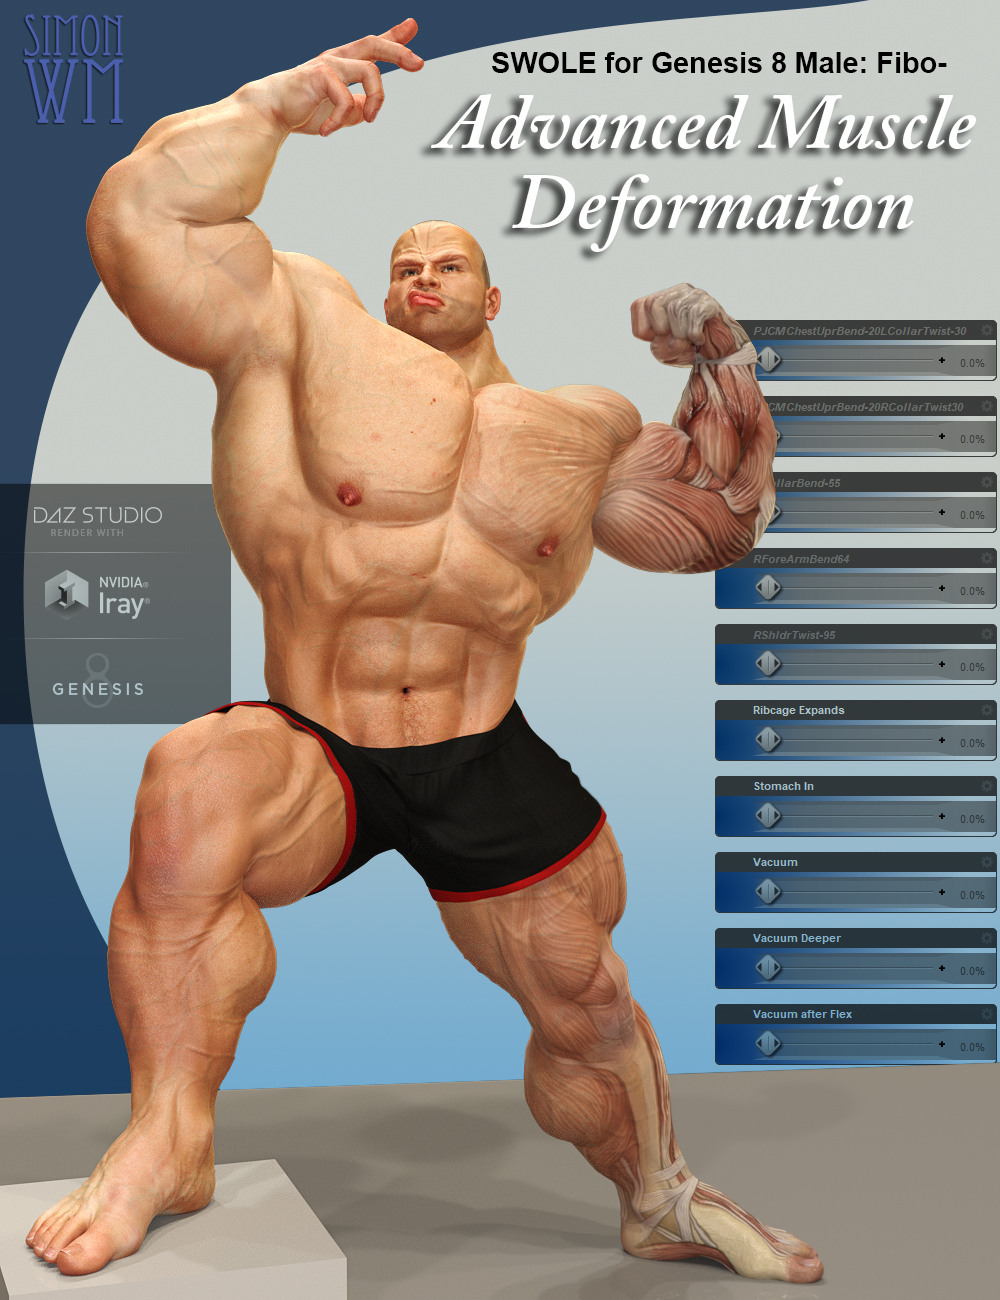 SWOLE for Genesis 8 Male: Fibo - Advanced Muscle Deformation by: SimonWM, 3D Models by Daz 3D